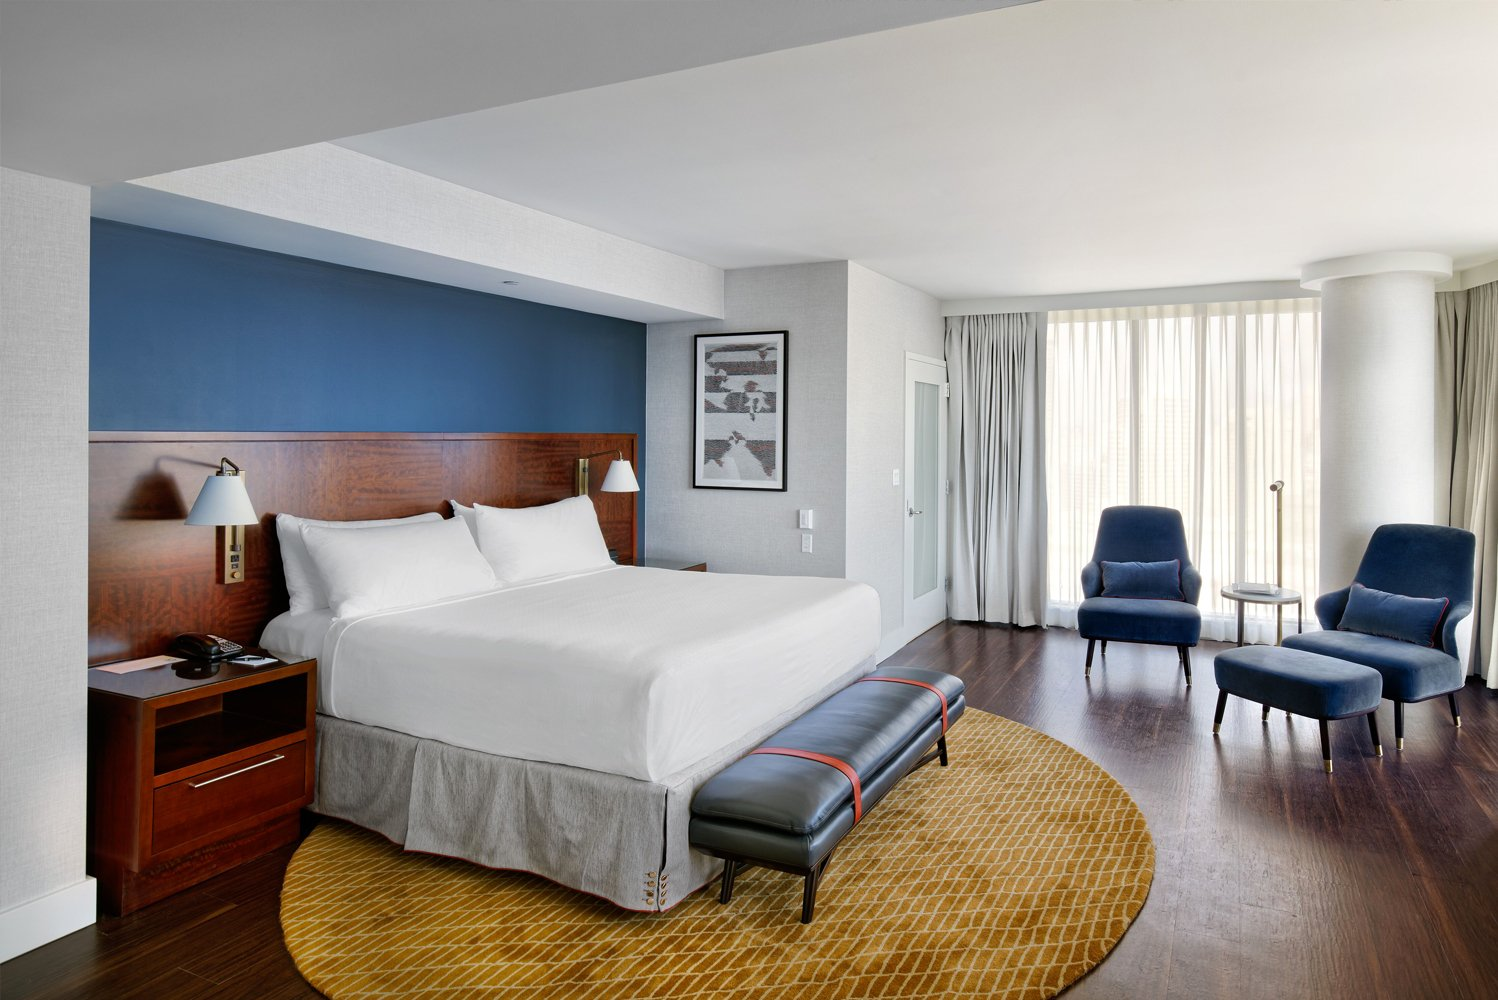 The InterContinental San Francisco Hotel is undergoing a top-to-bottom interior renovation.